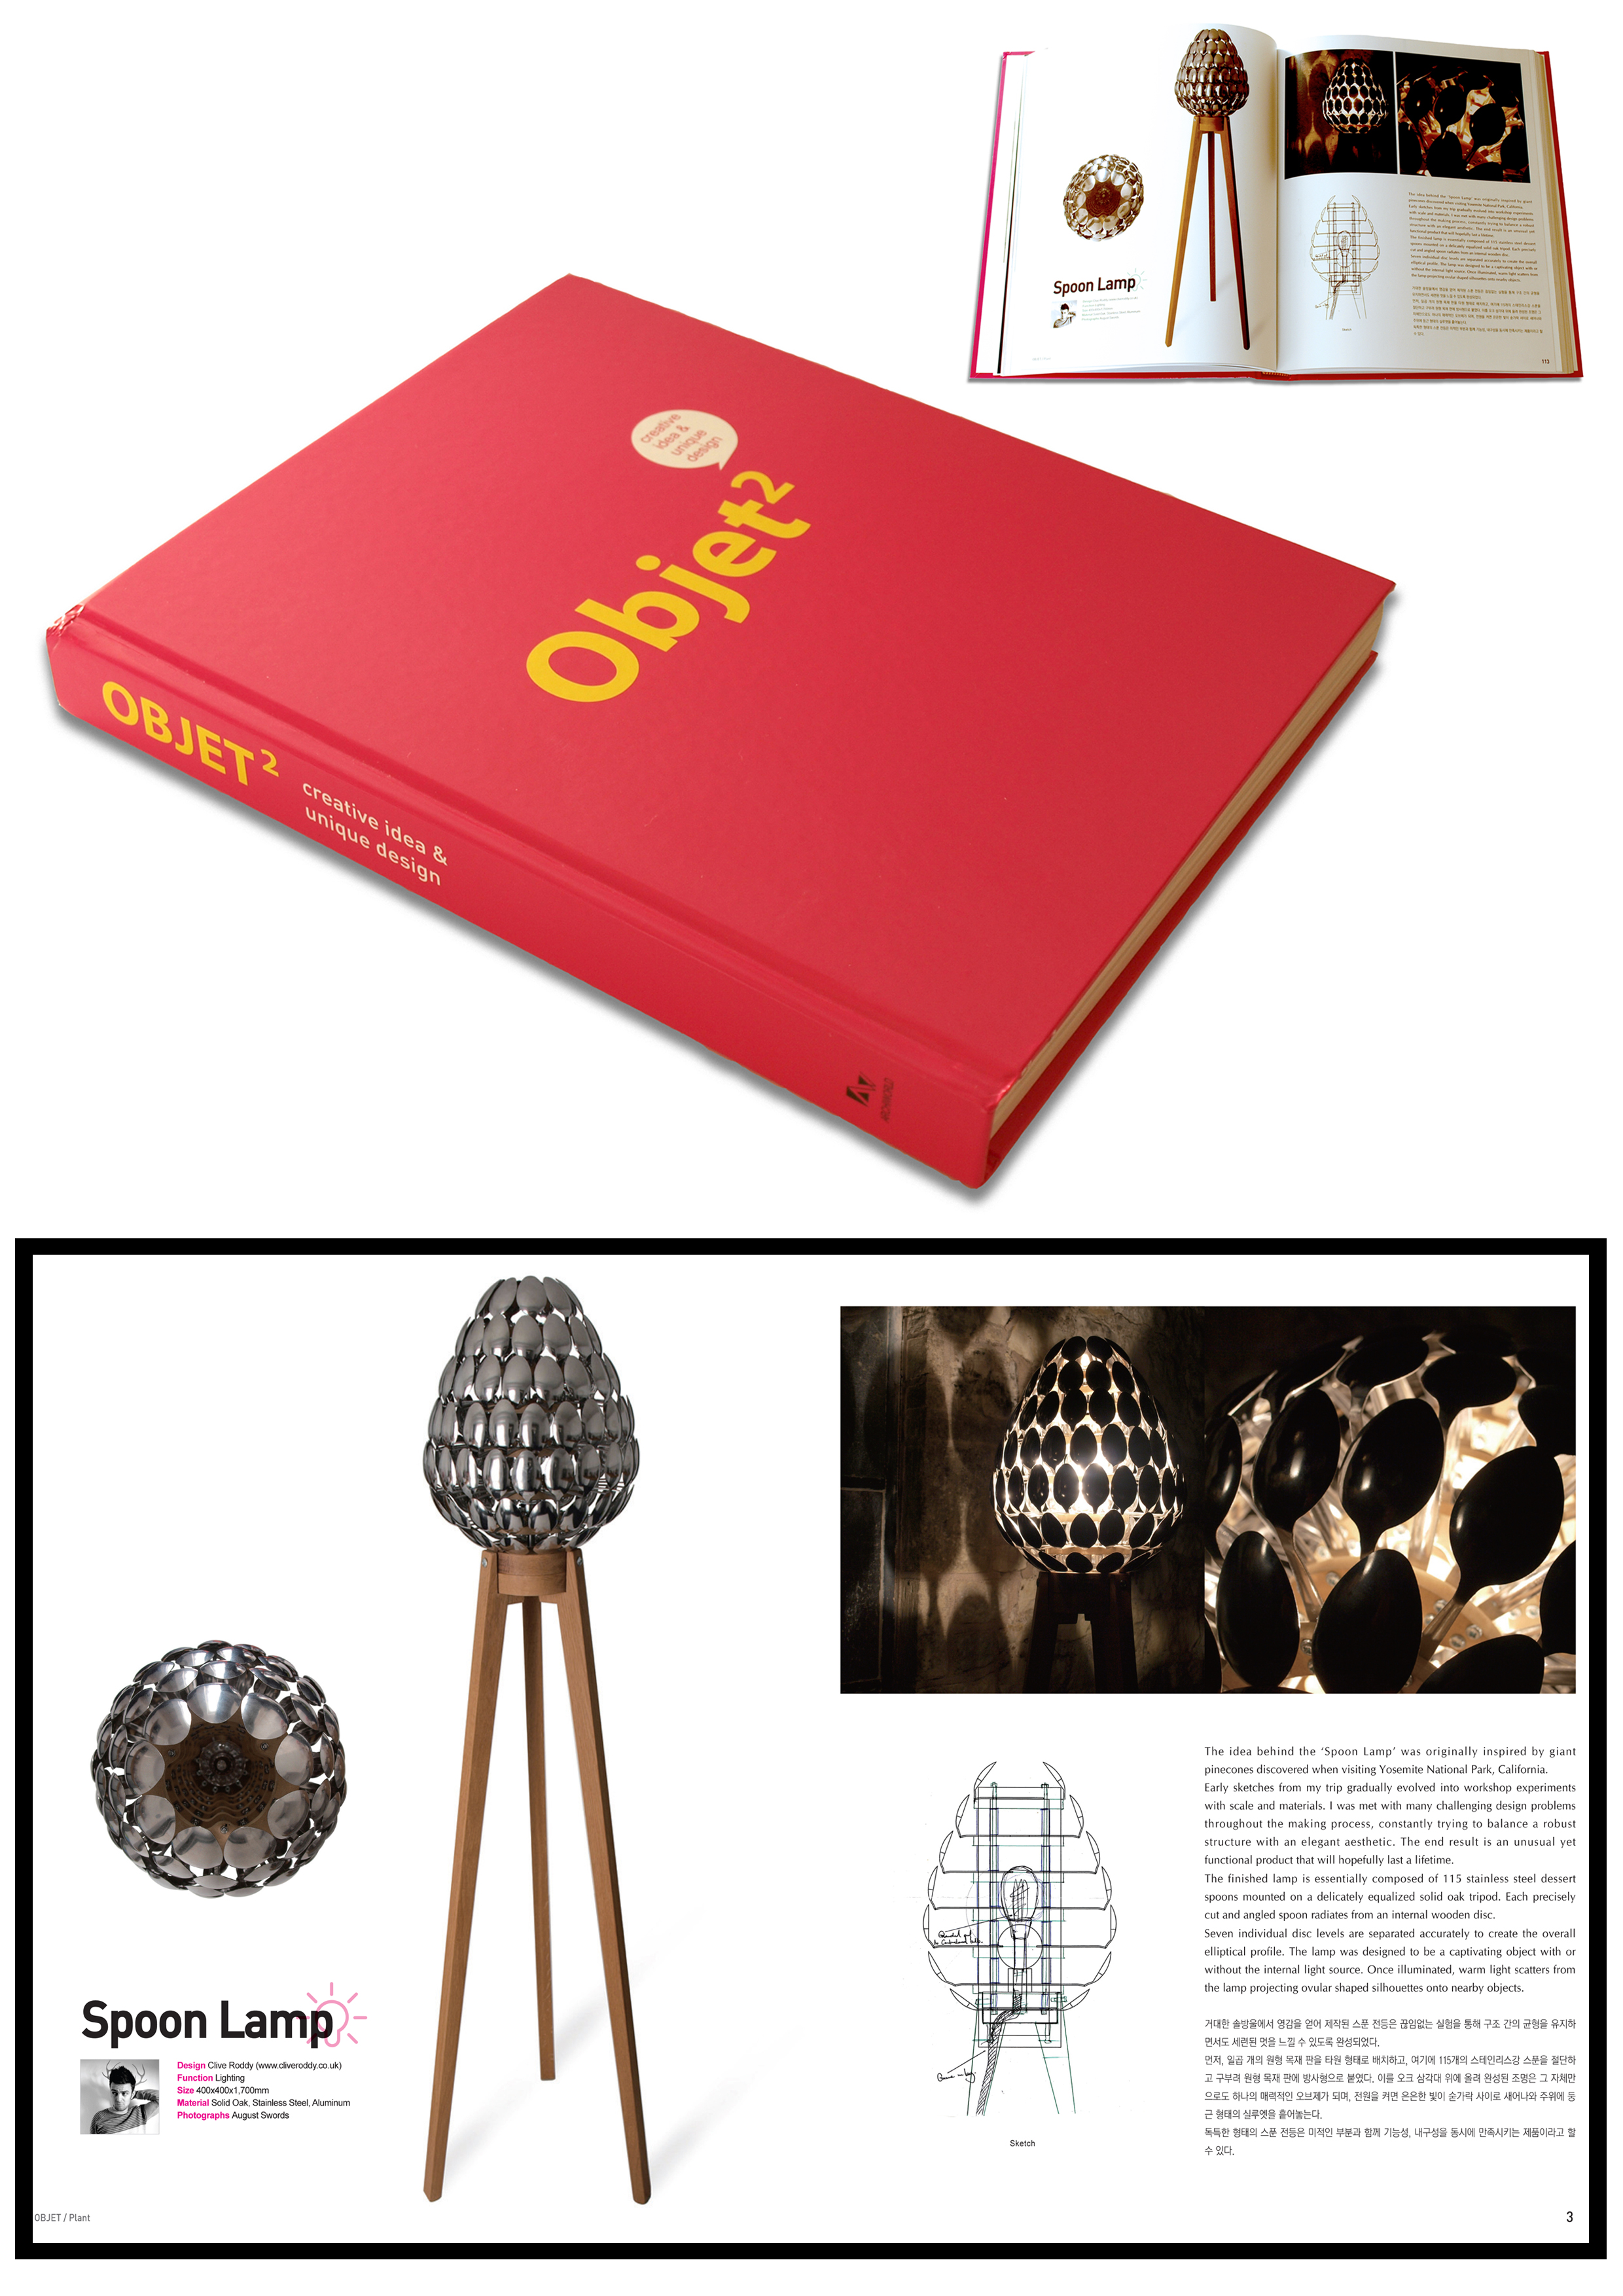 'Spoon Lamp' featured in the Korean design book 'Objet2'. Published in 2013. Korea.